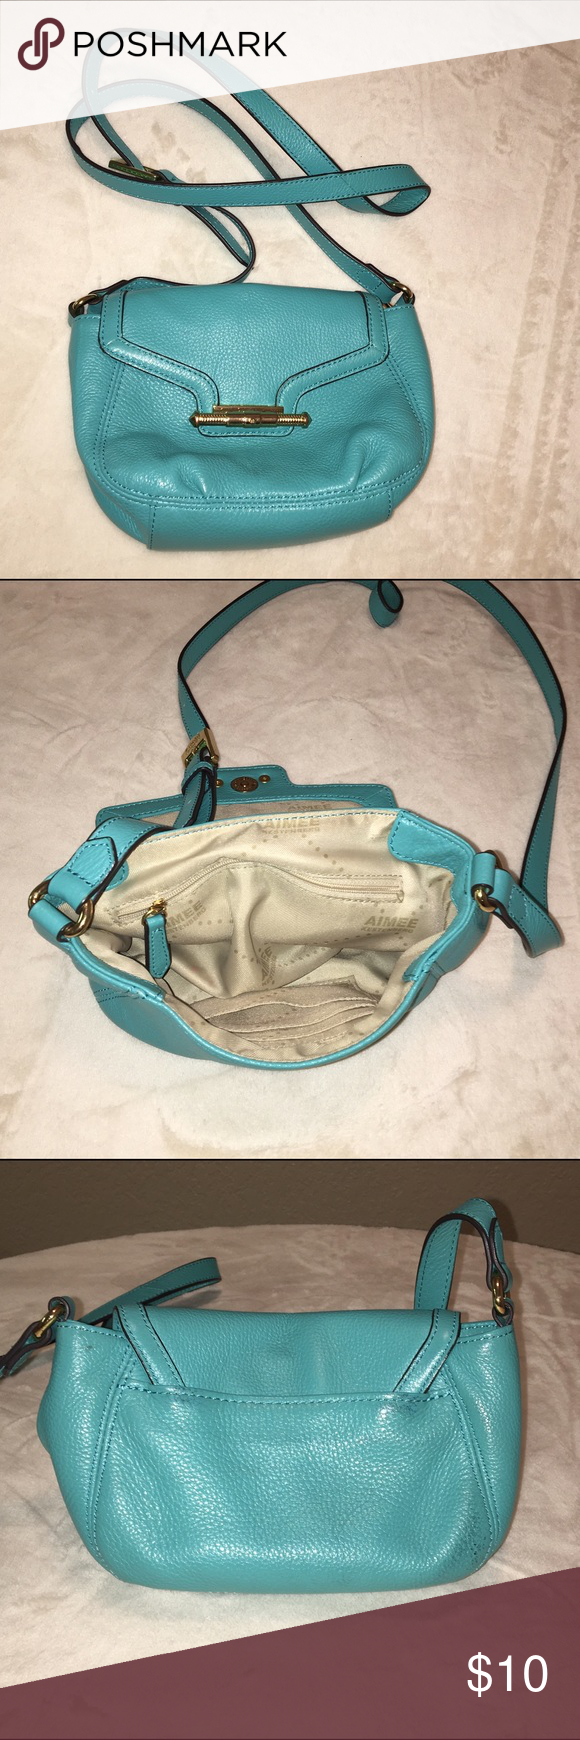 Final Price! Turquoise and Gold Crossbody Perfect for summer. In superb condition. Gold accents. Small but fits quite a lot. Bags Crossbody Bags